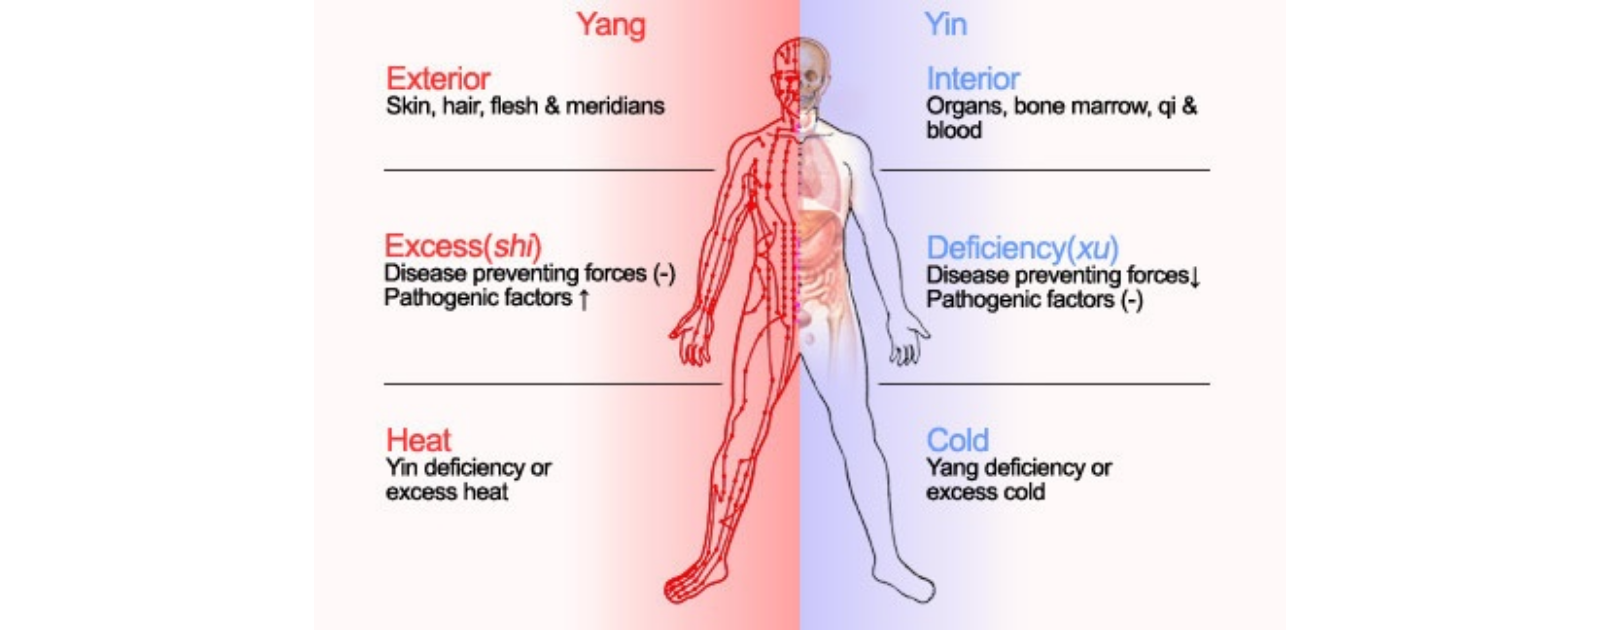 yin yang balance in human body